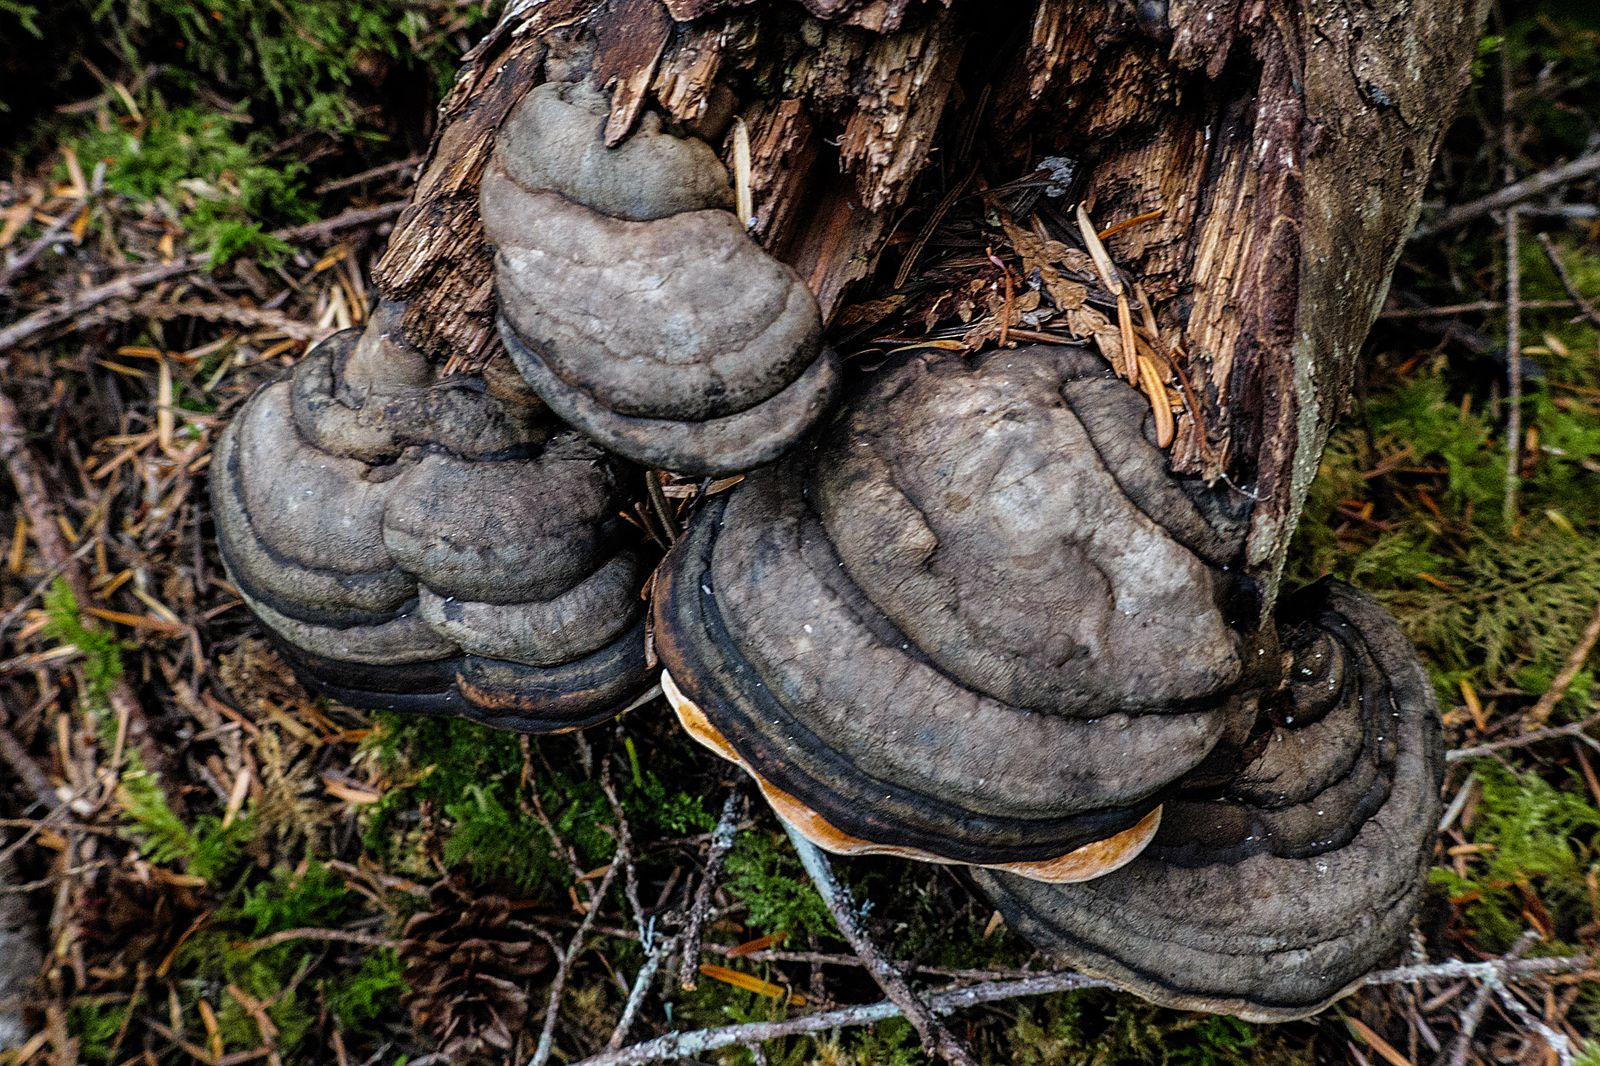 Mushrooms on the end of a log